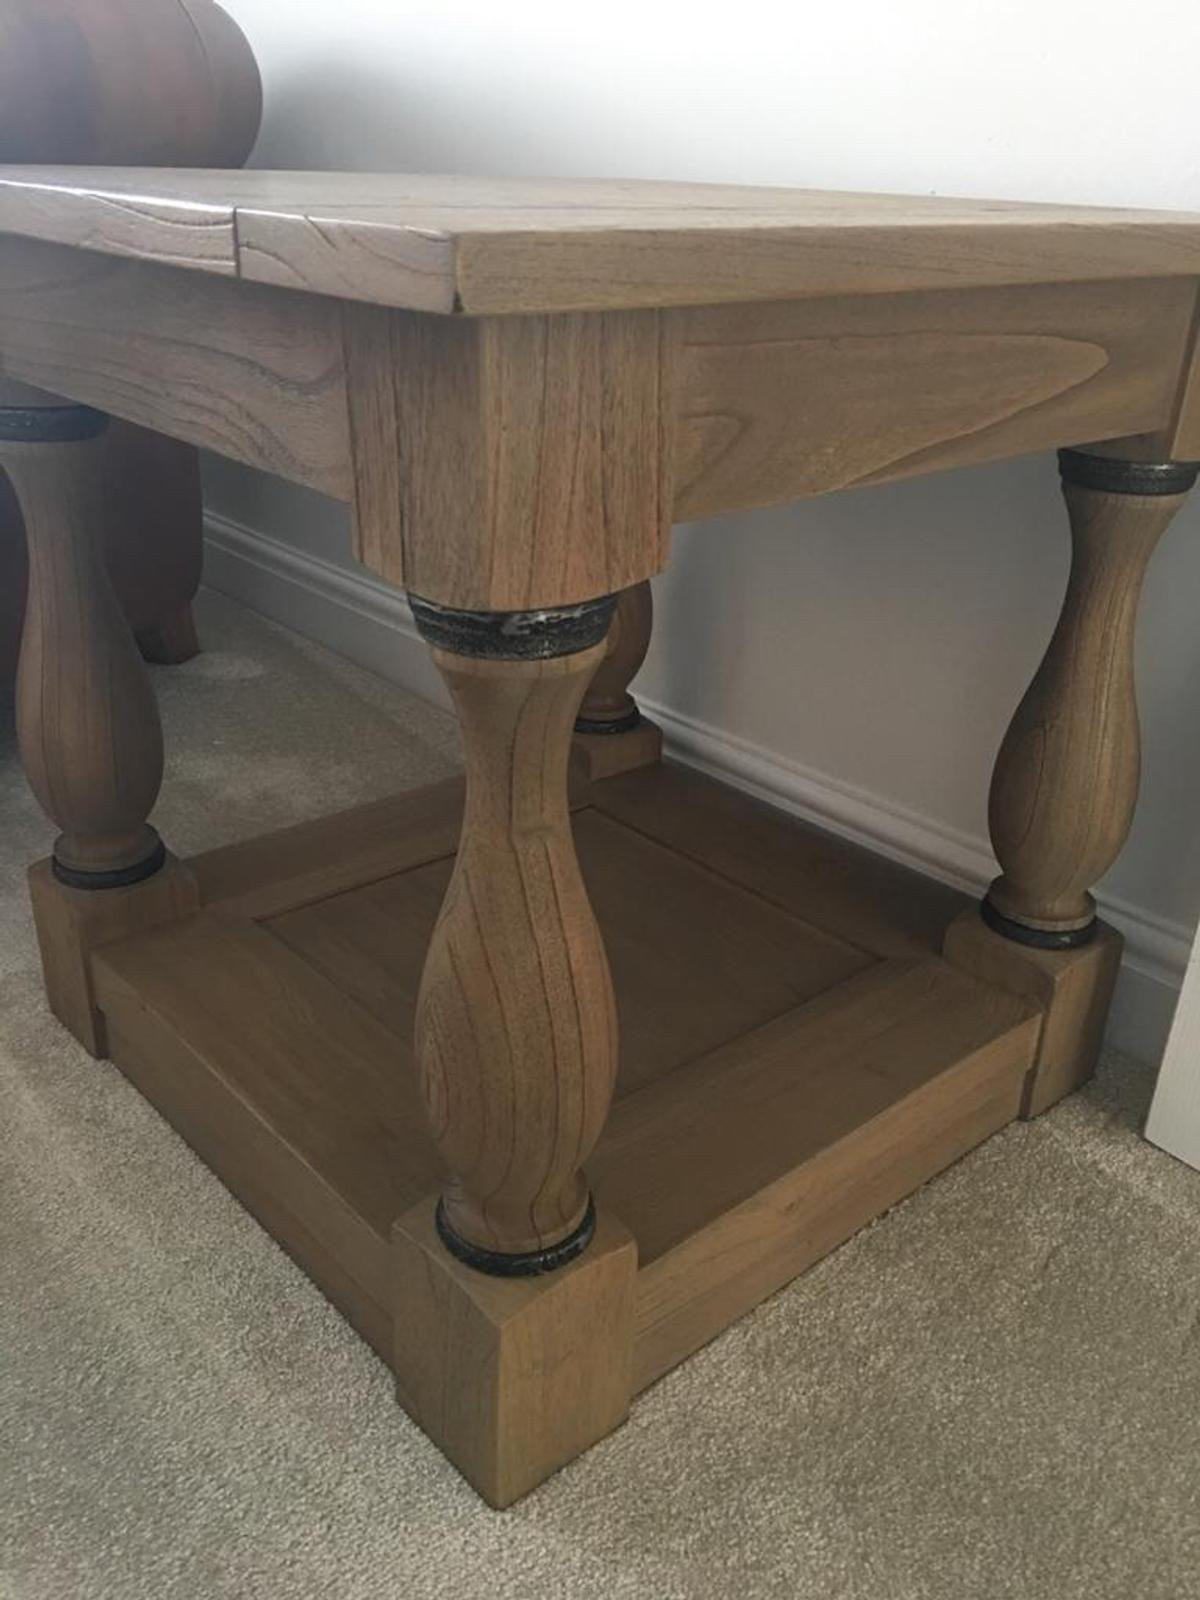 Furniture Village Oak Coffee Table In Wigan For 8000 For